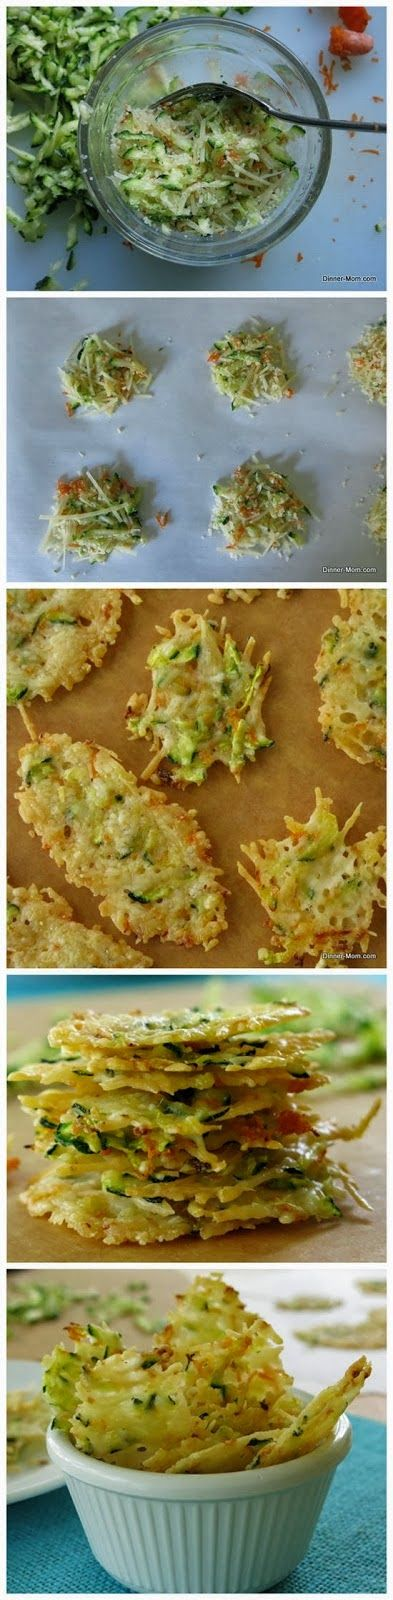 Parmesan Cheese Crisps Laced with Zucchini & Carrots. I love cheese crisps, so to add veggies to it is just perfect!